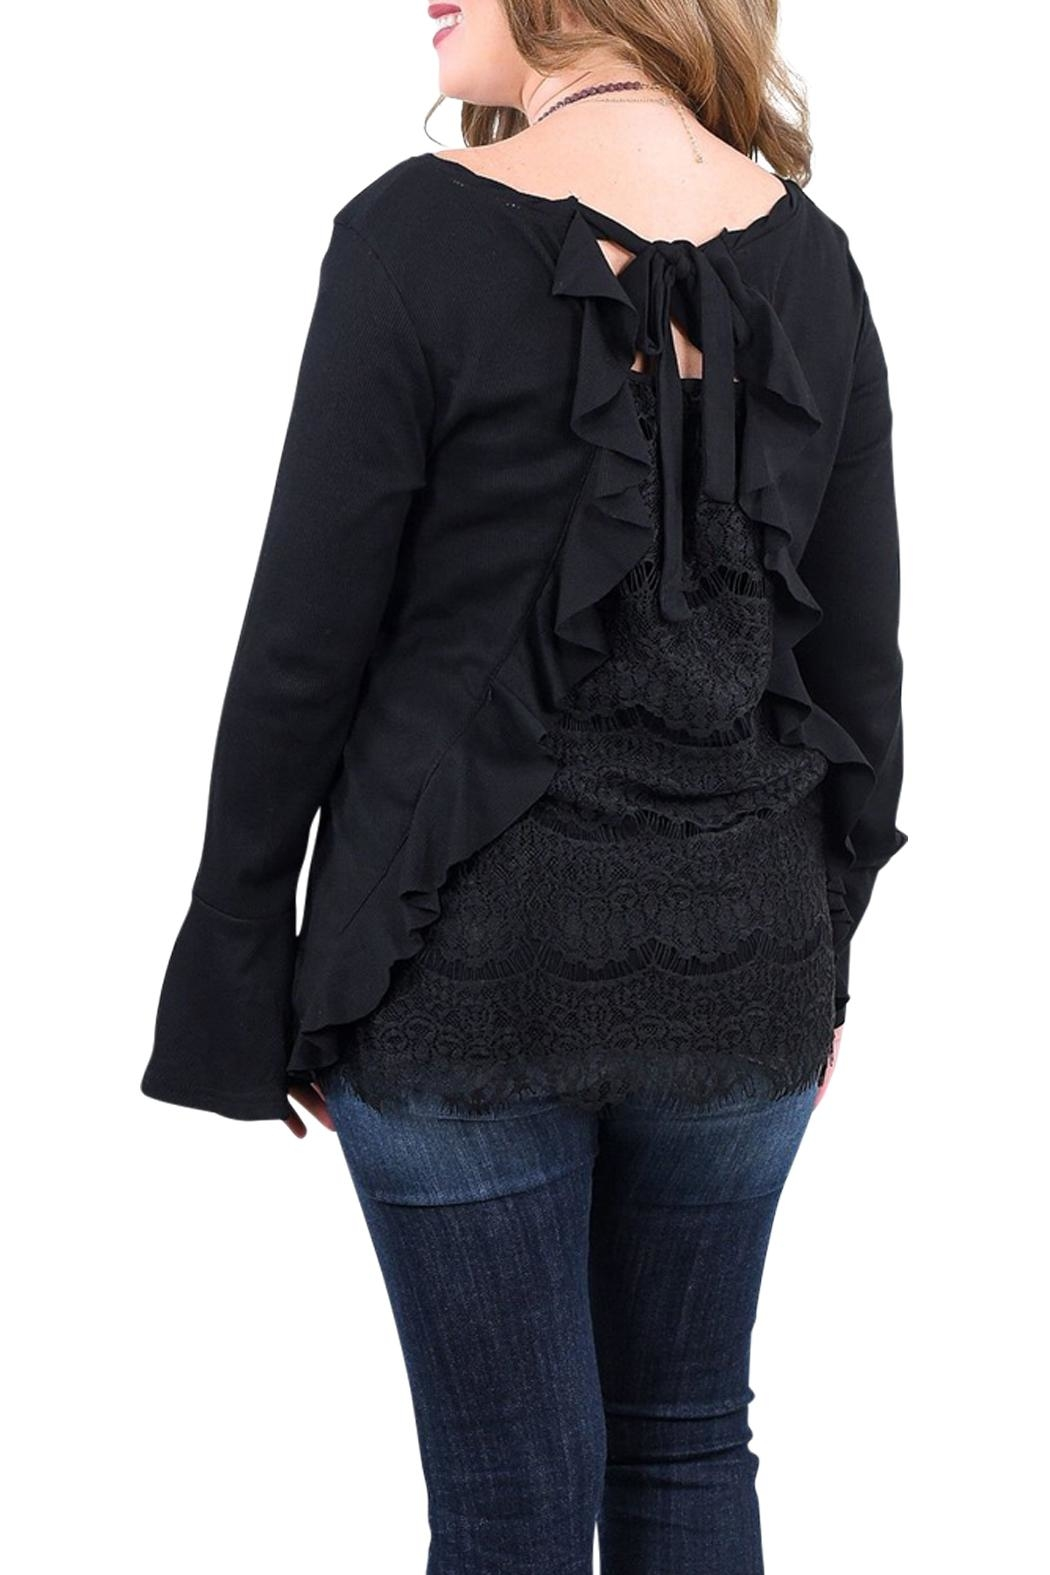 Umgee USA Black Lace Top - Front Full Image